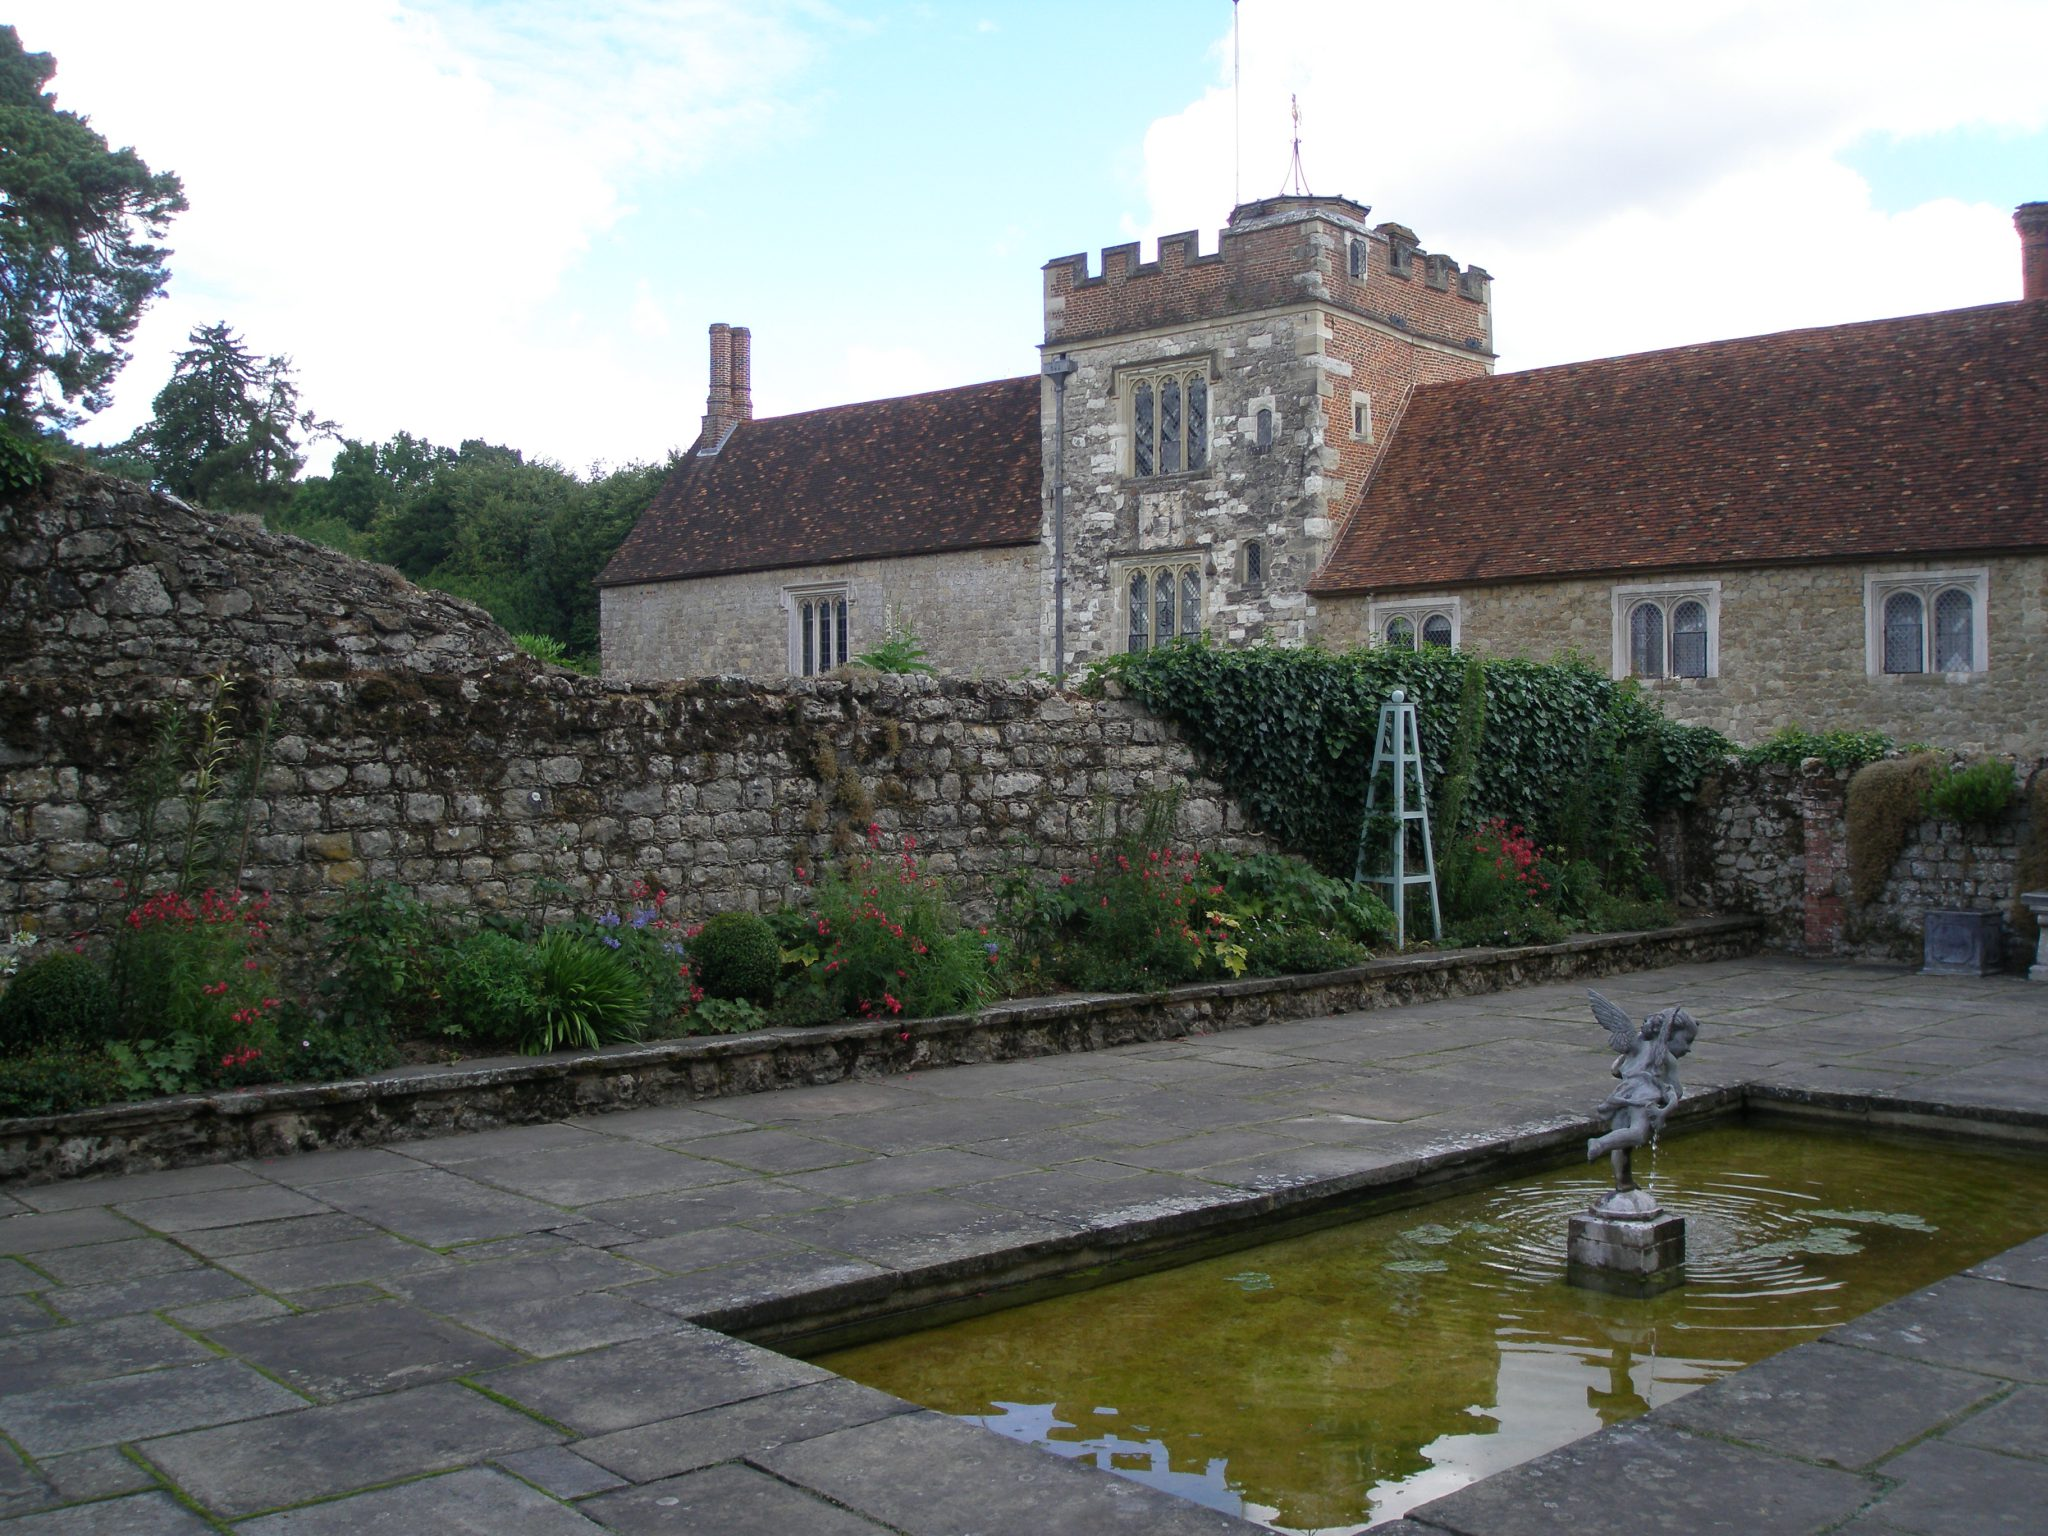 View toward the Main House, from the Walled Pool Garden